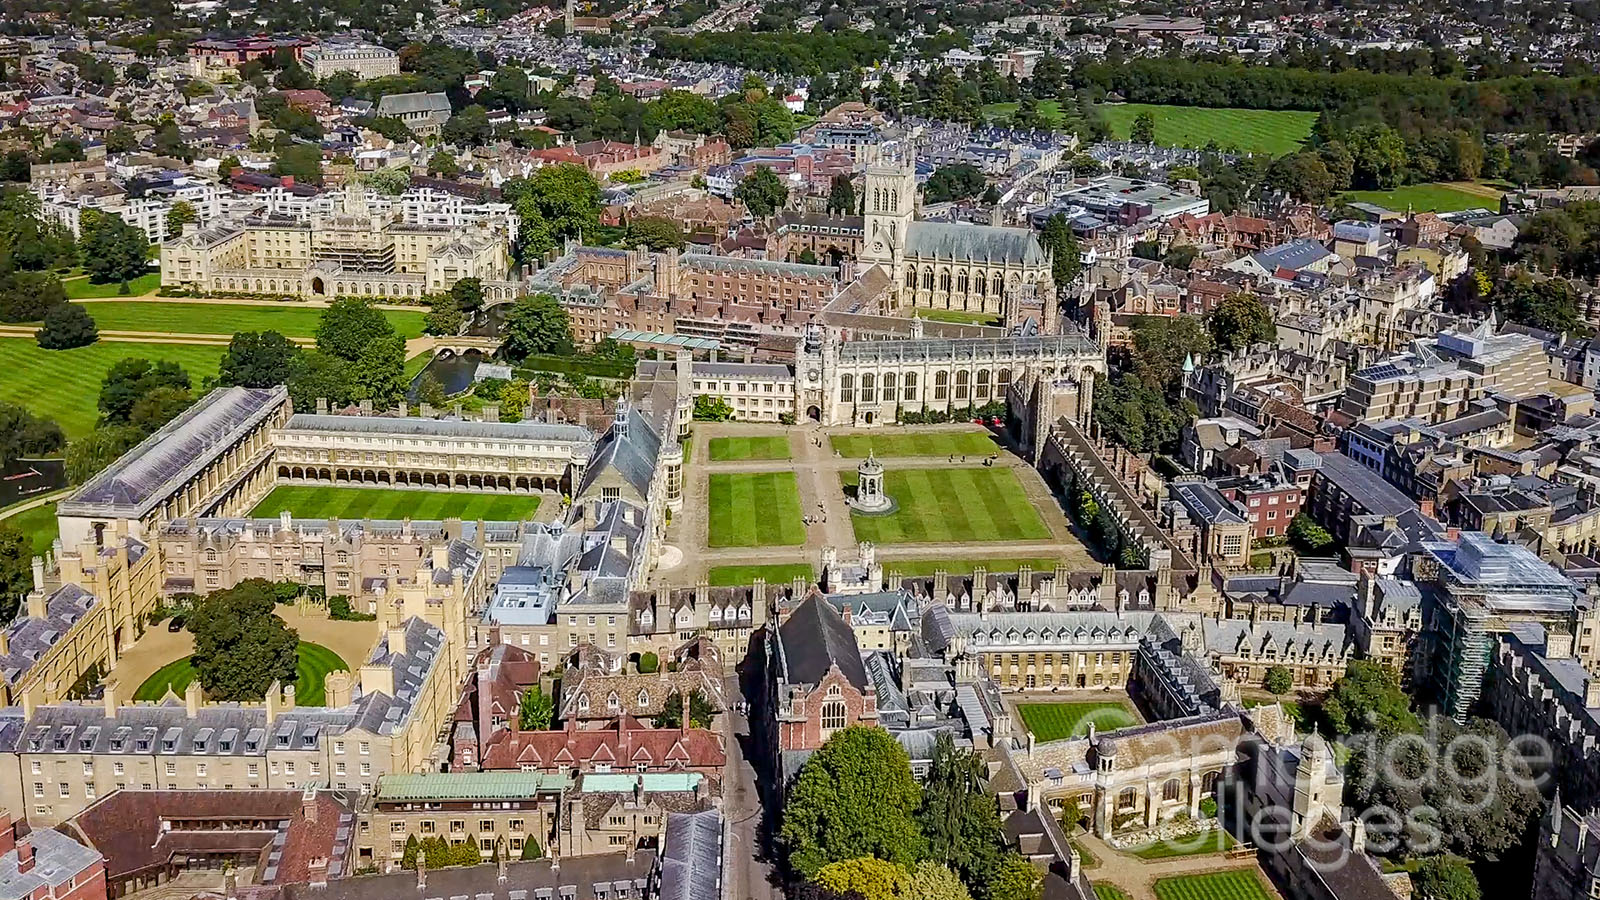 A bird's eye view of Trinity college, Cambridge